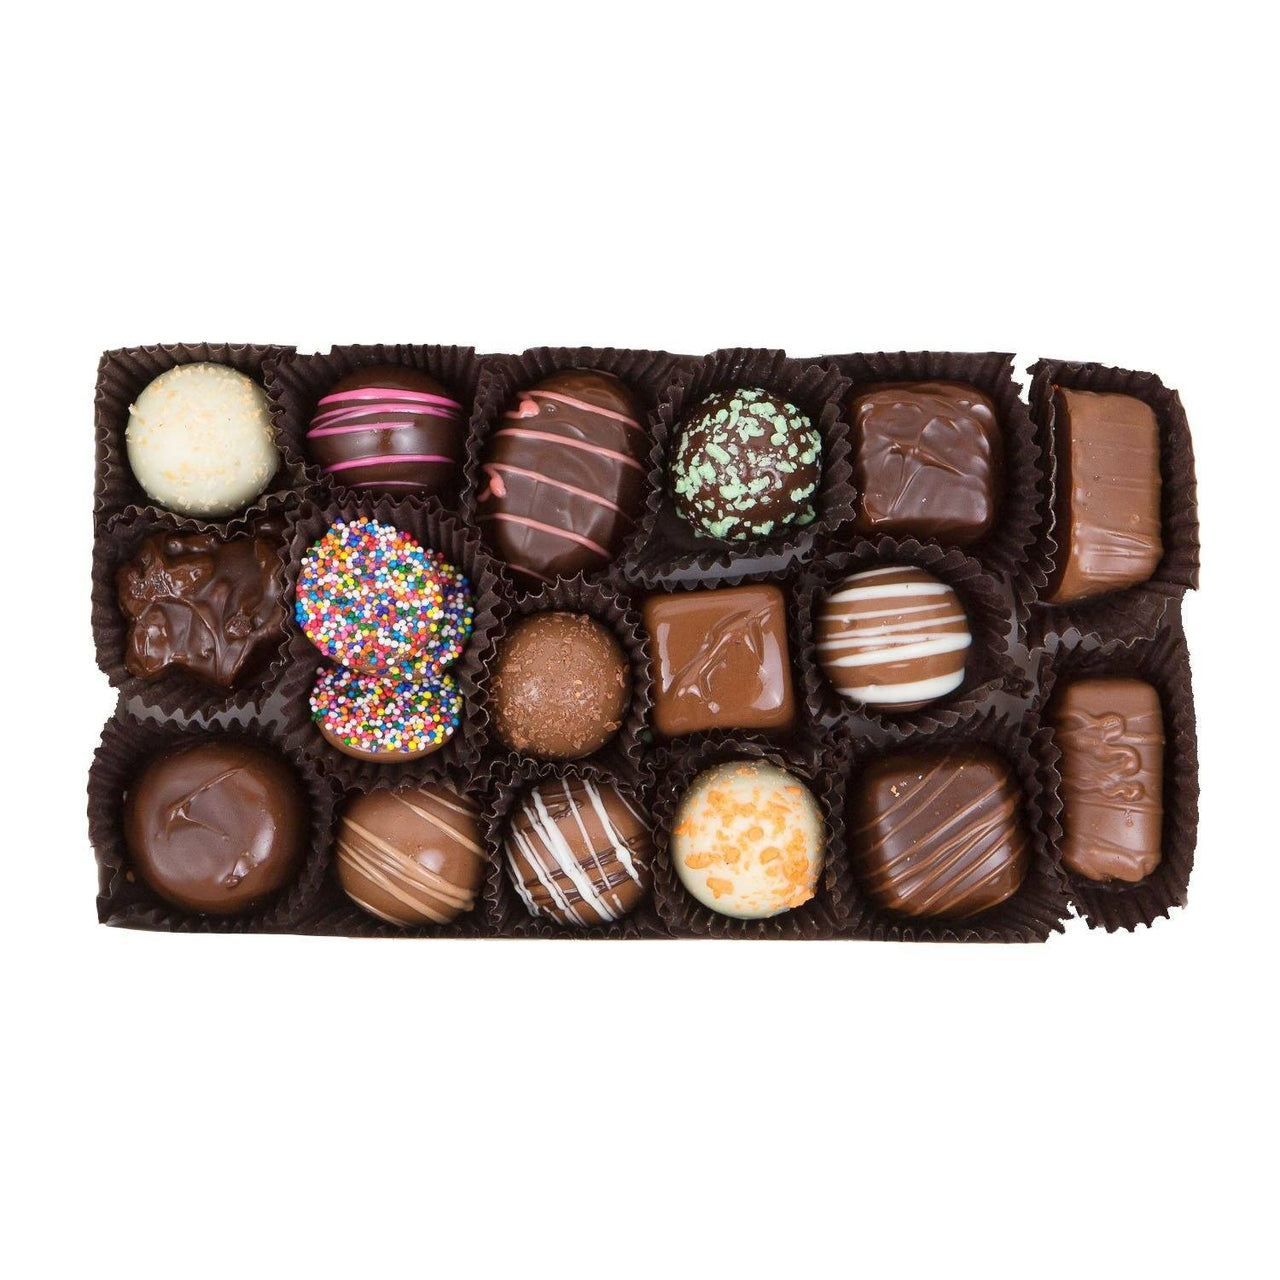 Secret Santa Online - Chocolate Assortment Gift Box - Jackie's Chocolate (4336367599731)